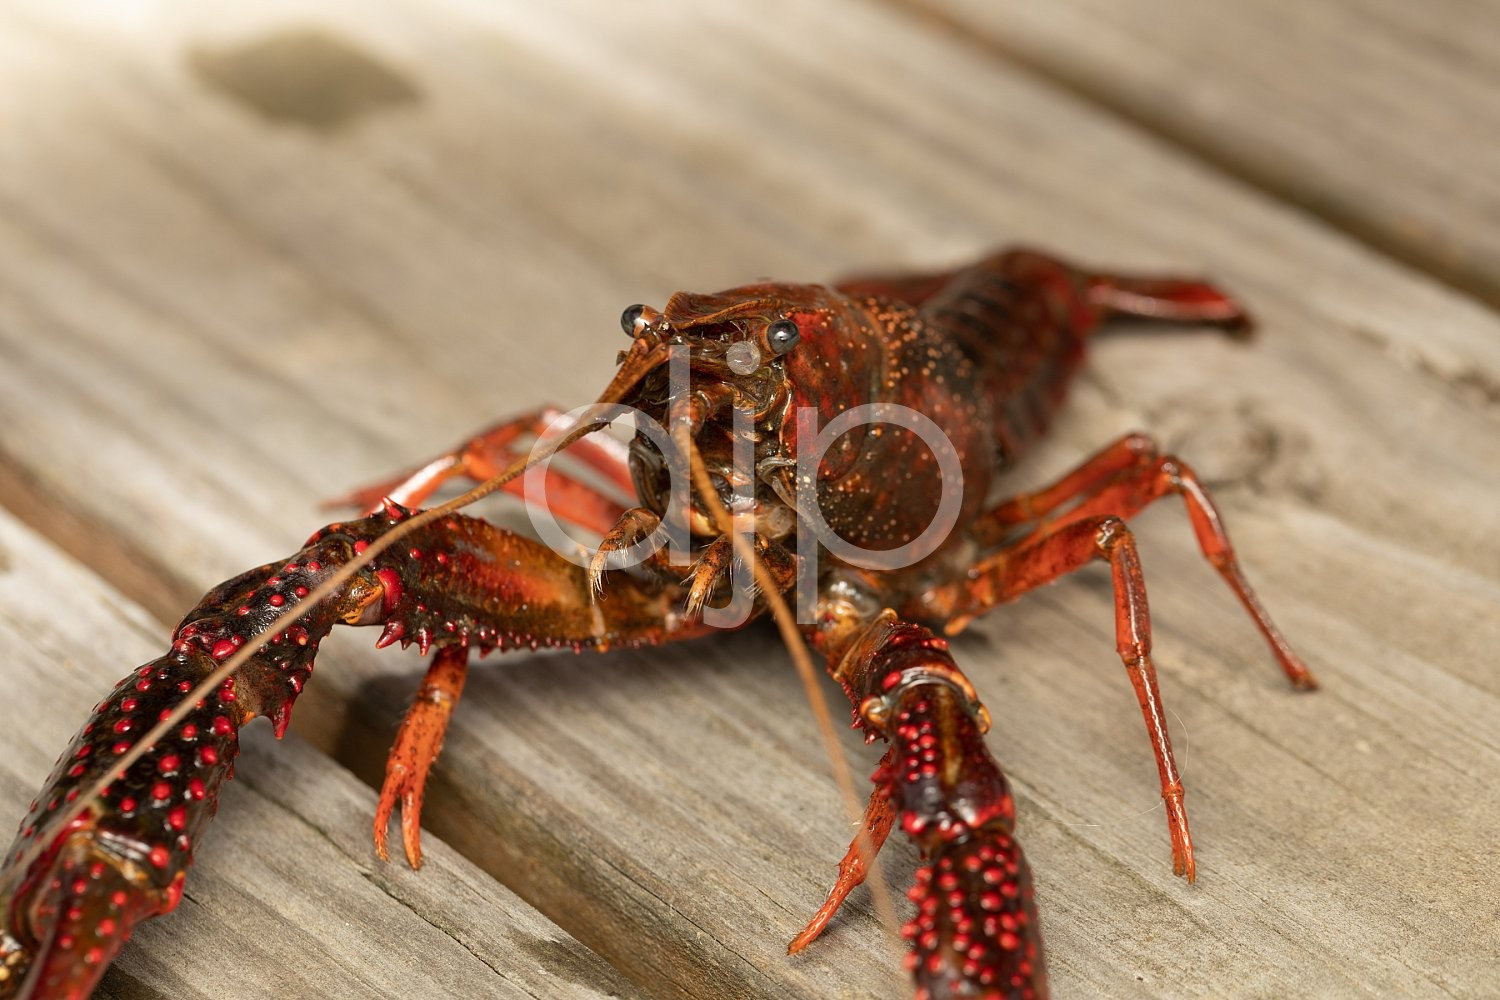 D Jones Photography, Sugar Land, djonesphoto, excursions with djp, flash, macro, personal, quarantine, red, crawfish